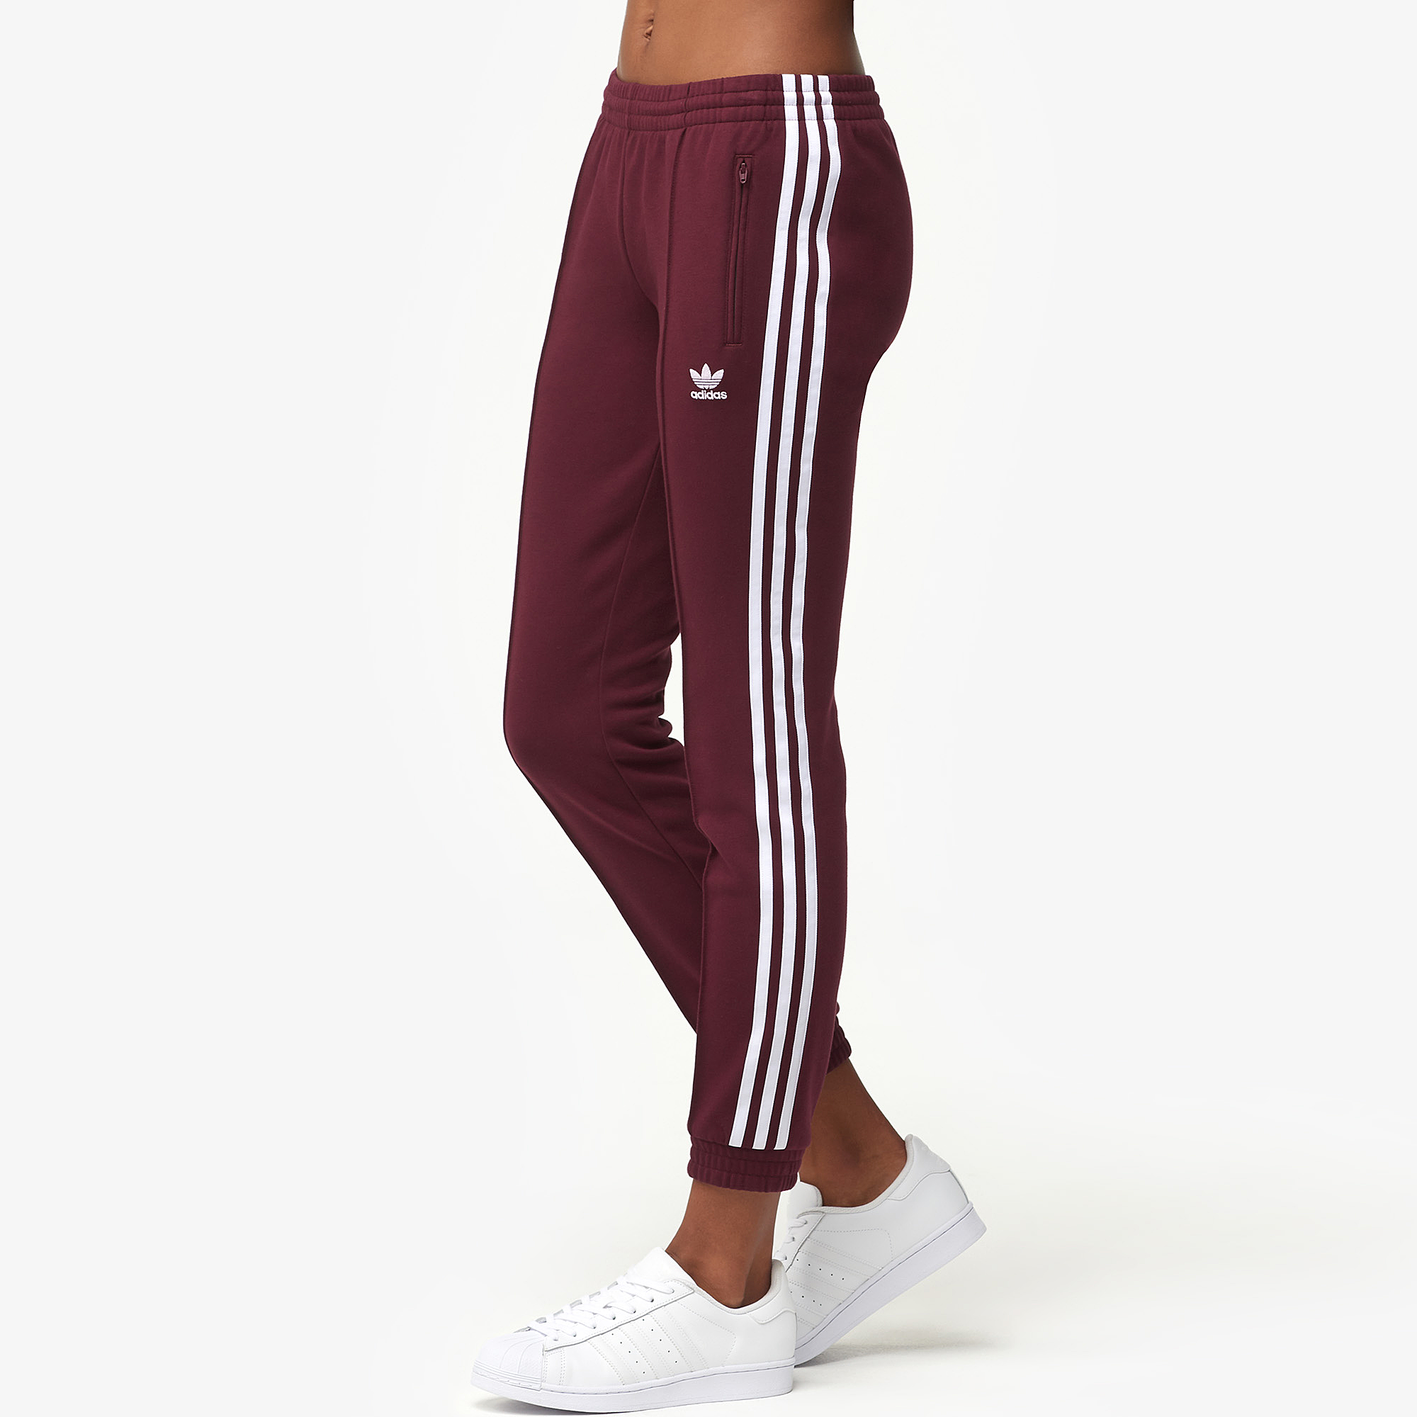 1243acbb1f94d1 adidas Originals Colorado Track Pants - Women s - Casual - Clothing ...